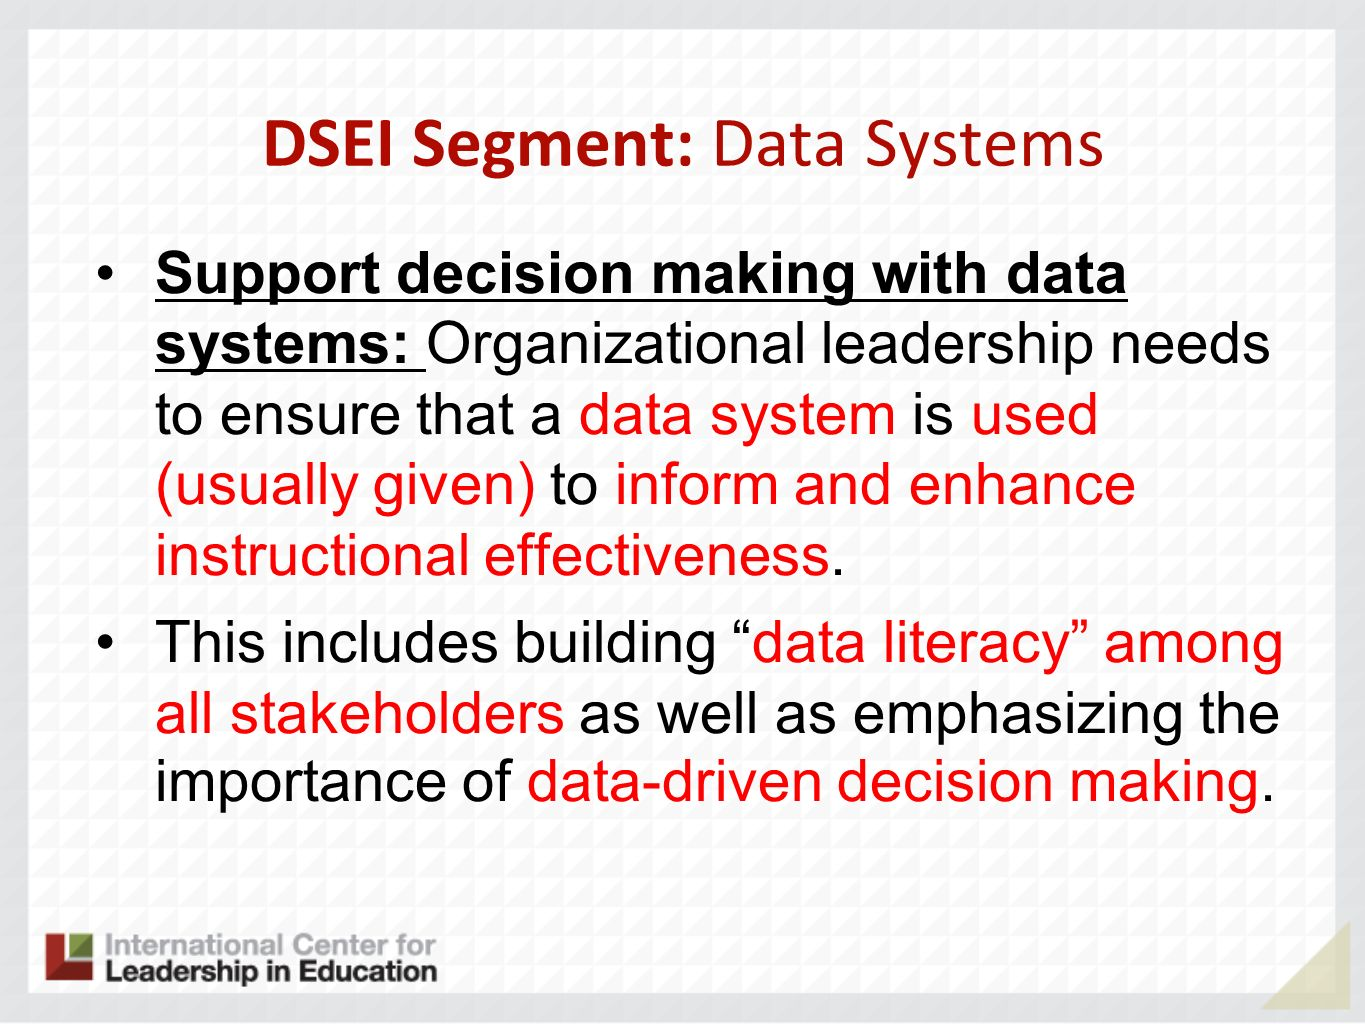 DSEI Segment: Data Systems Support decision making with data systems: Organizational leadership needs to ensure that a data system is used (usually given) to inform and enhance instructional effectiveness.